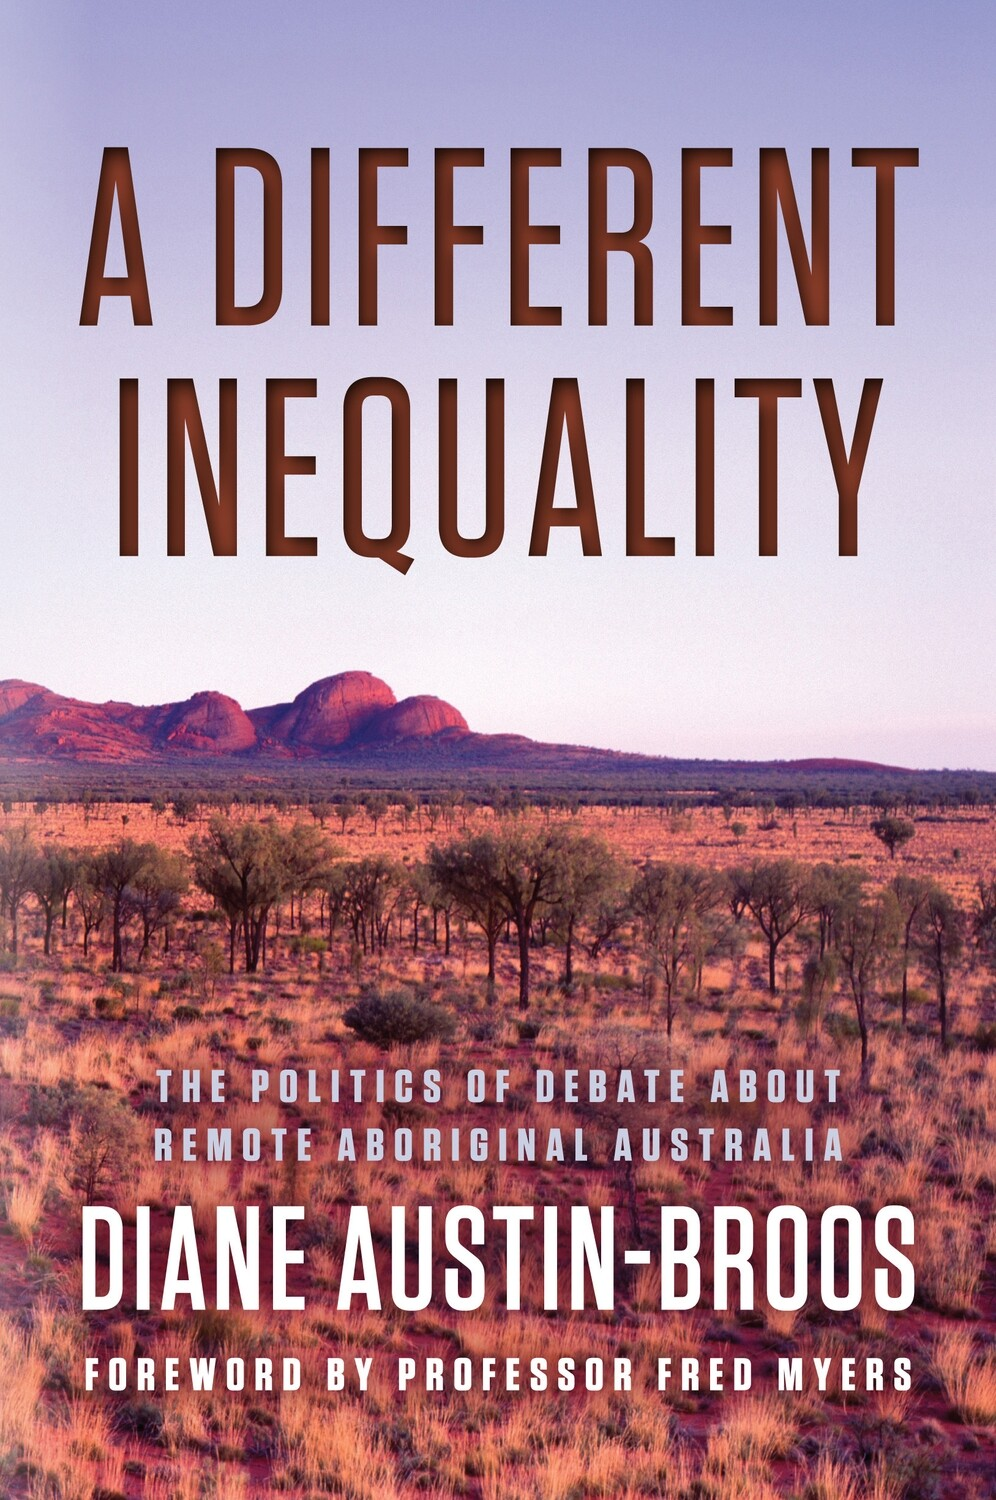 A Different Inequality: The politics of debate about remote Aboriginal Australia by Diane Austin-Broos